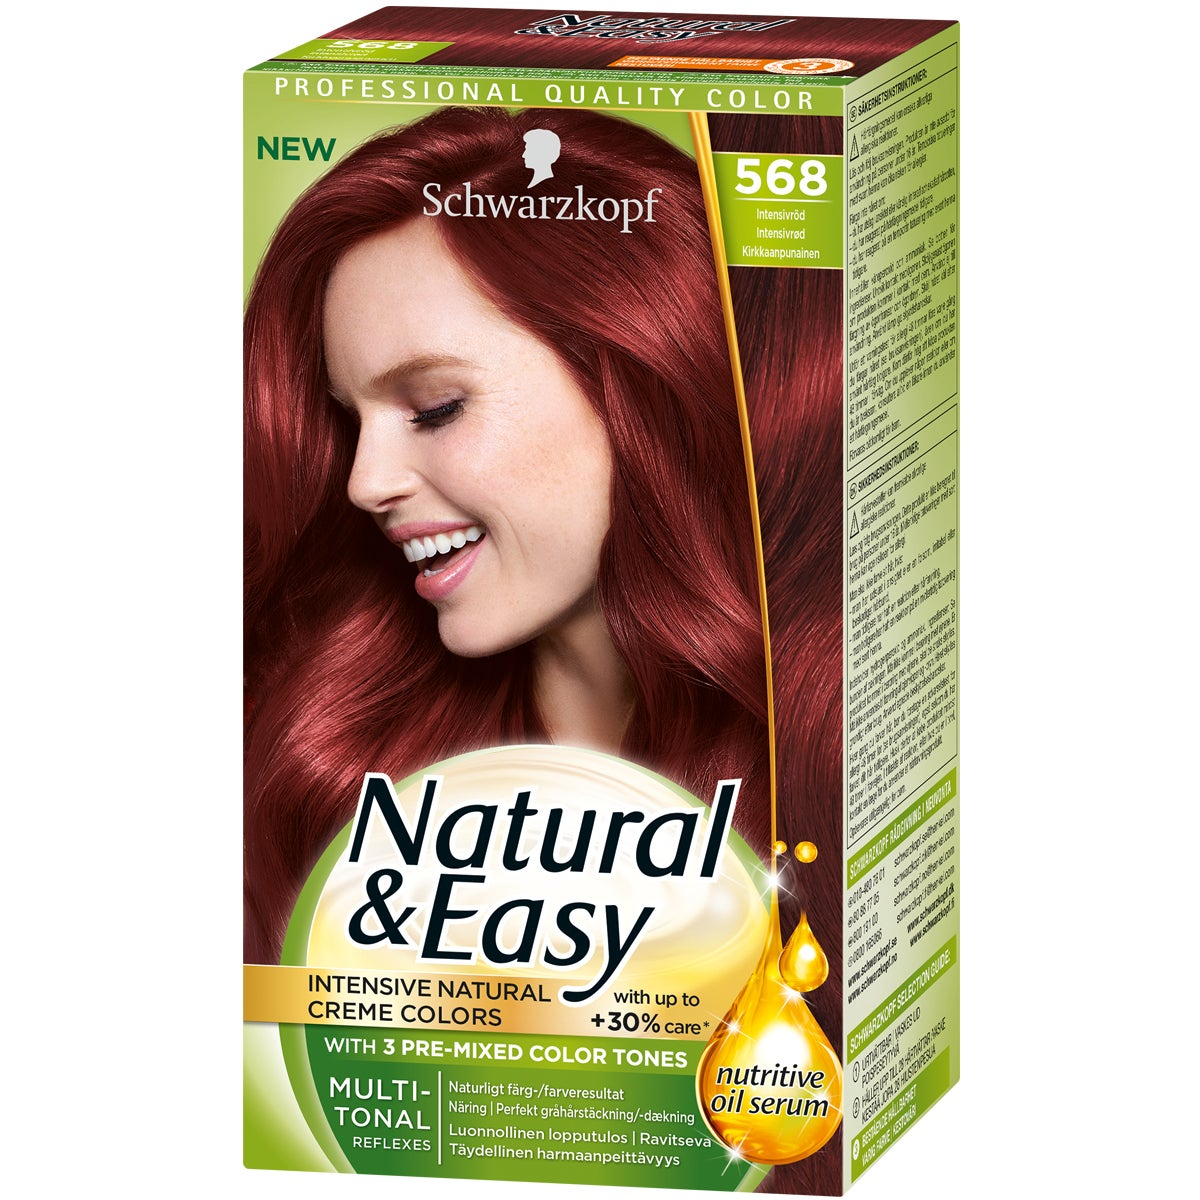 Schwarzkopf Natural & Easy 568 Intensivröd